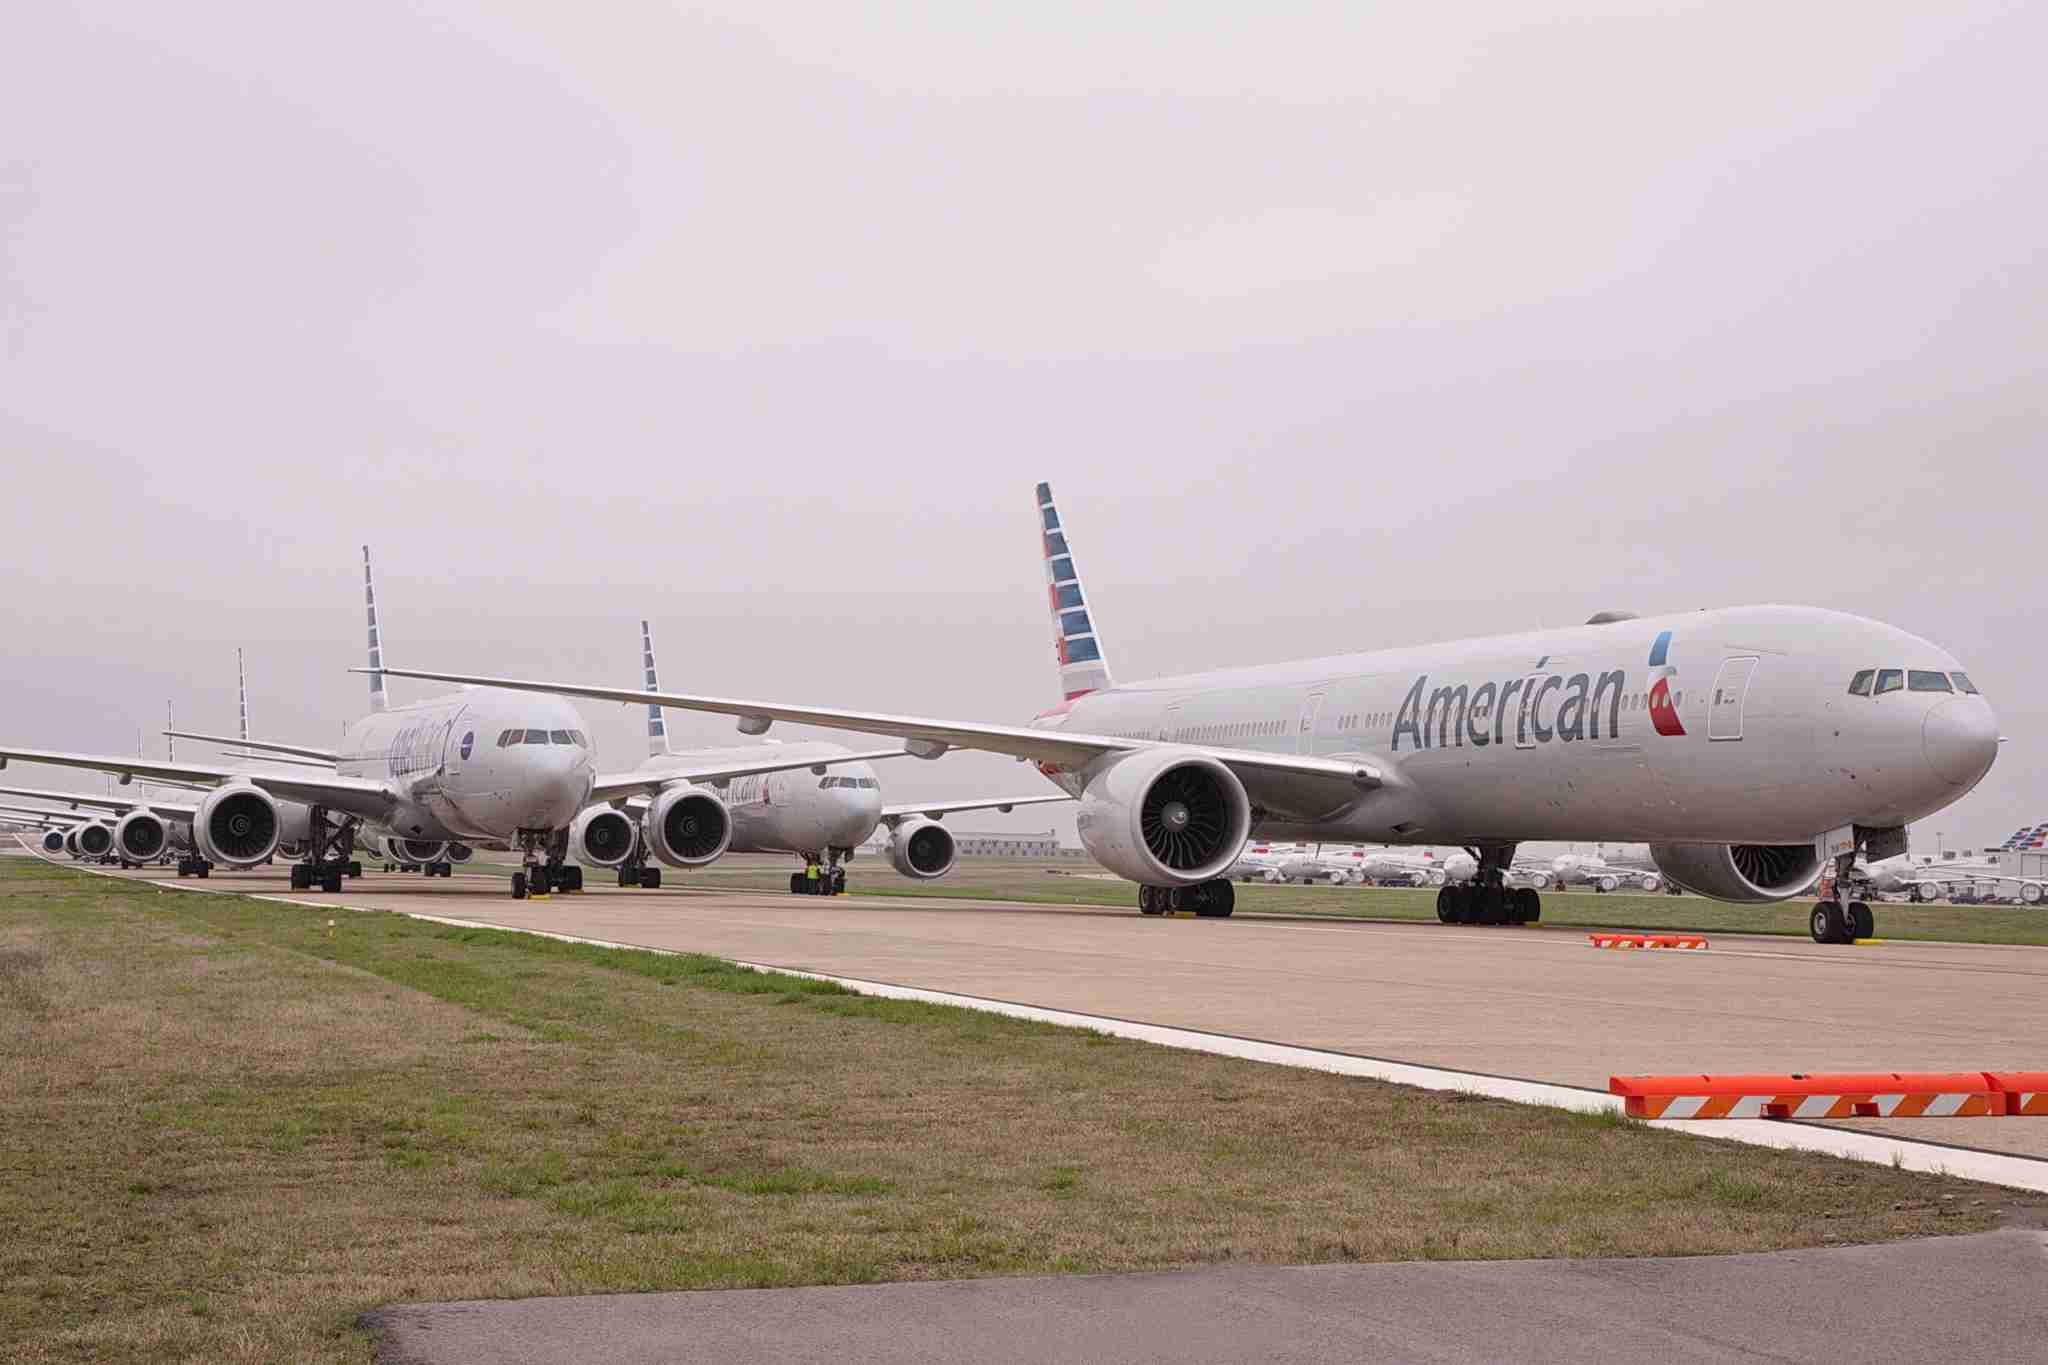 American Airlines jets parked in Tulsa during the coronavirus pandemic. (Photo courtesy of American Airlines)